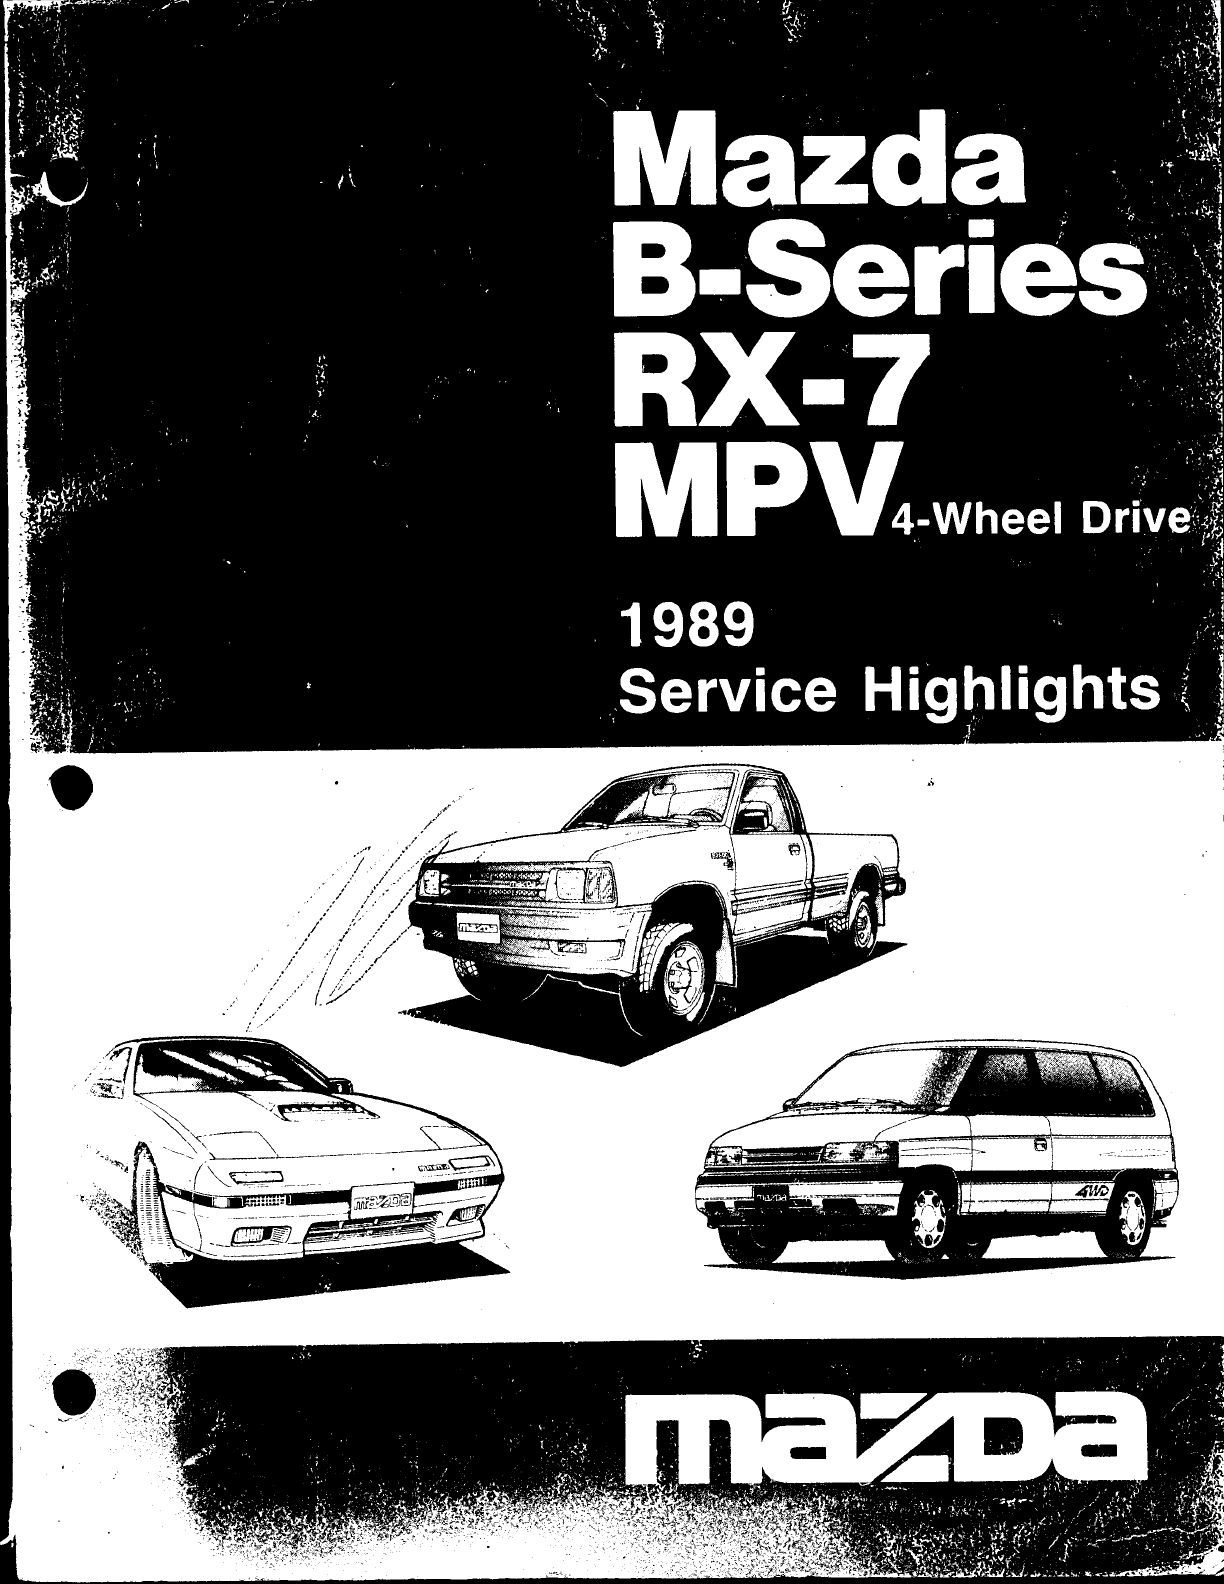 See our other Mazda RX-7 Manuals: